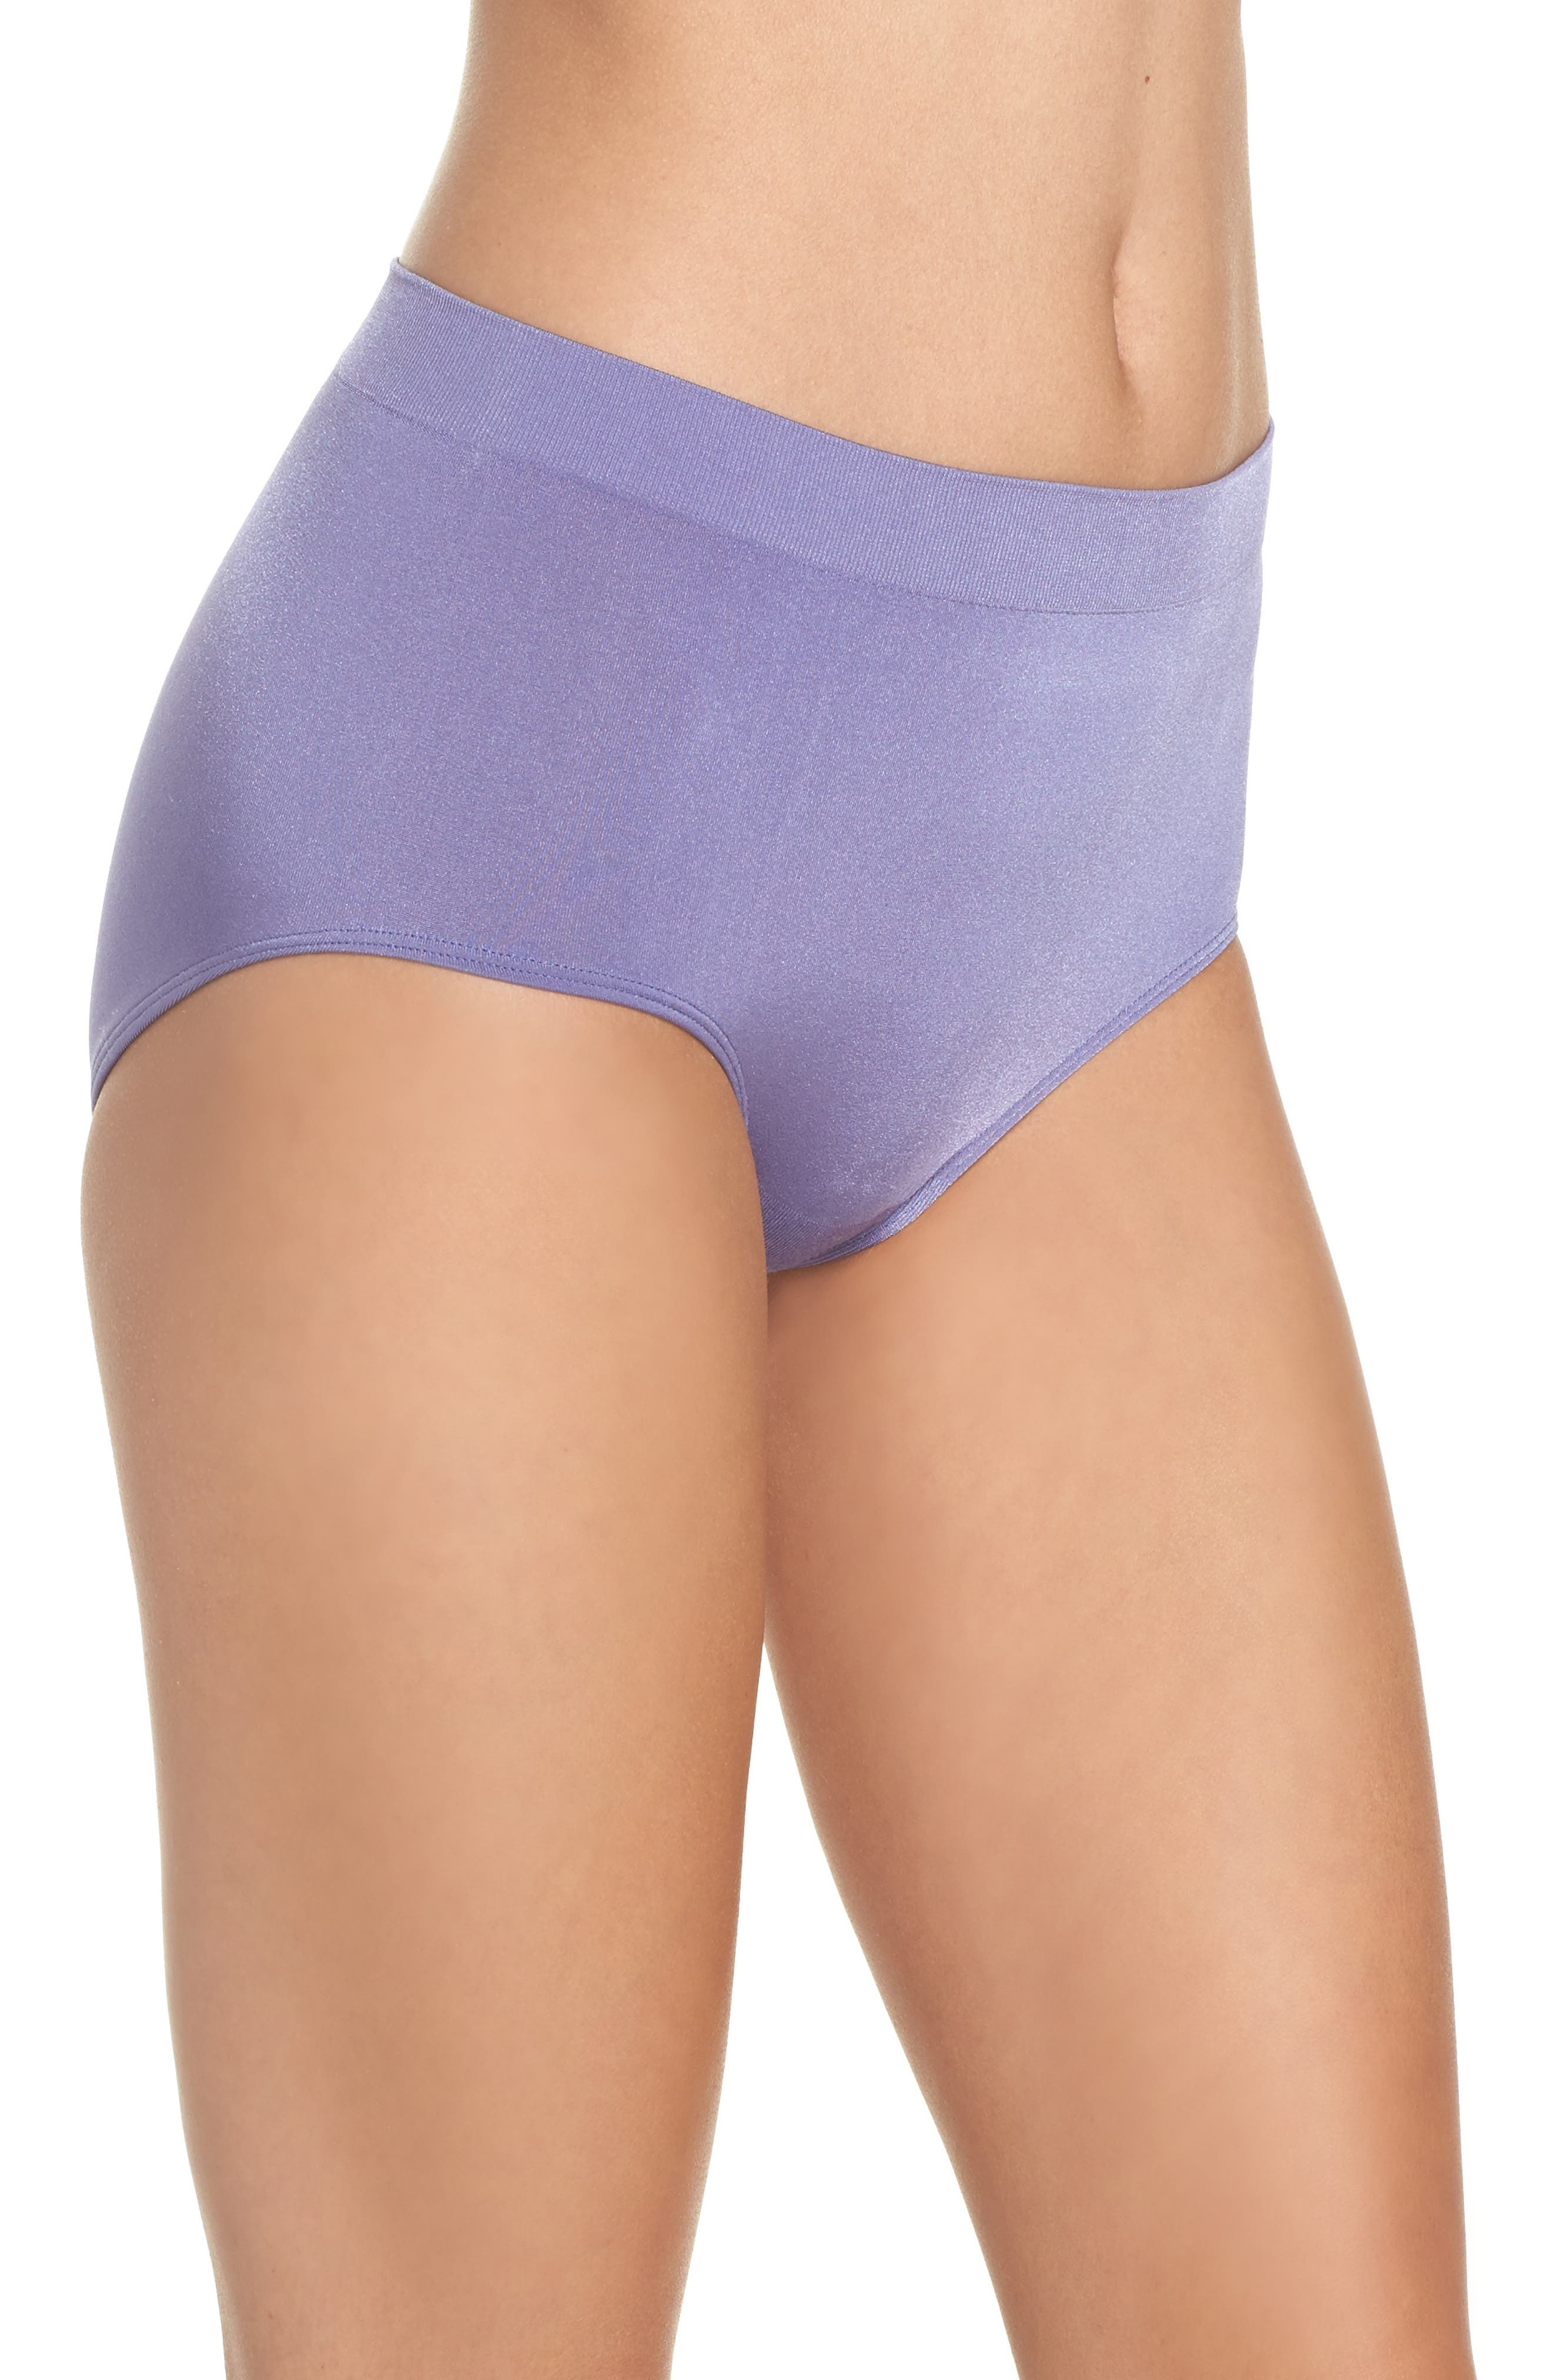 B Smooth Briefs,                             Alternate thumbnail 142, color,